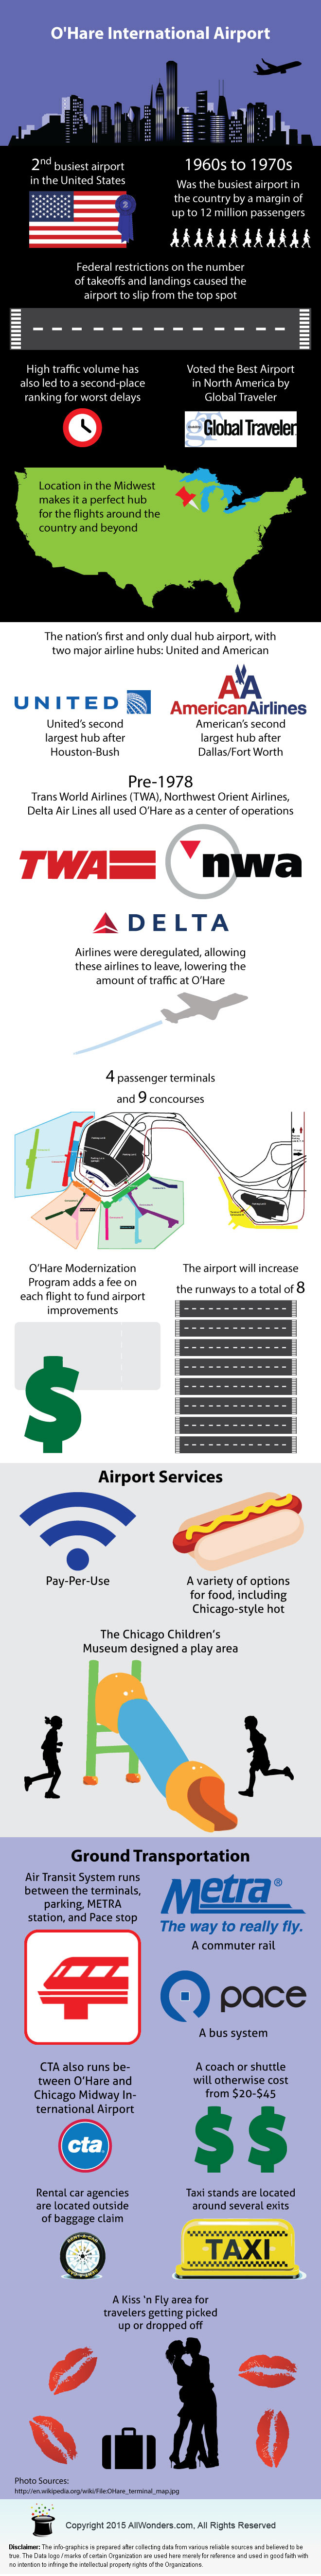 Chicago O'Hare International Airport (ORD) Infographic